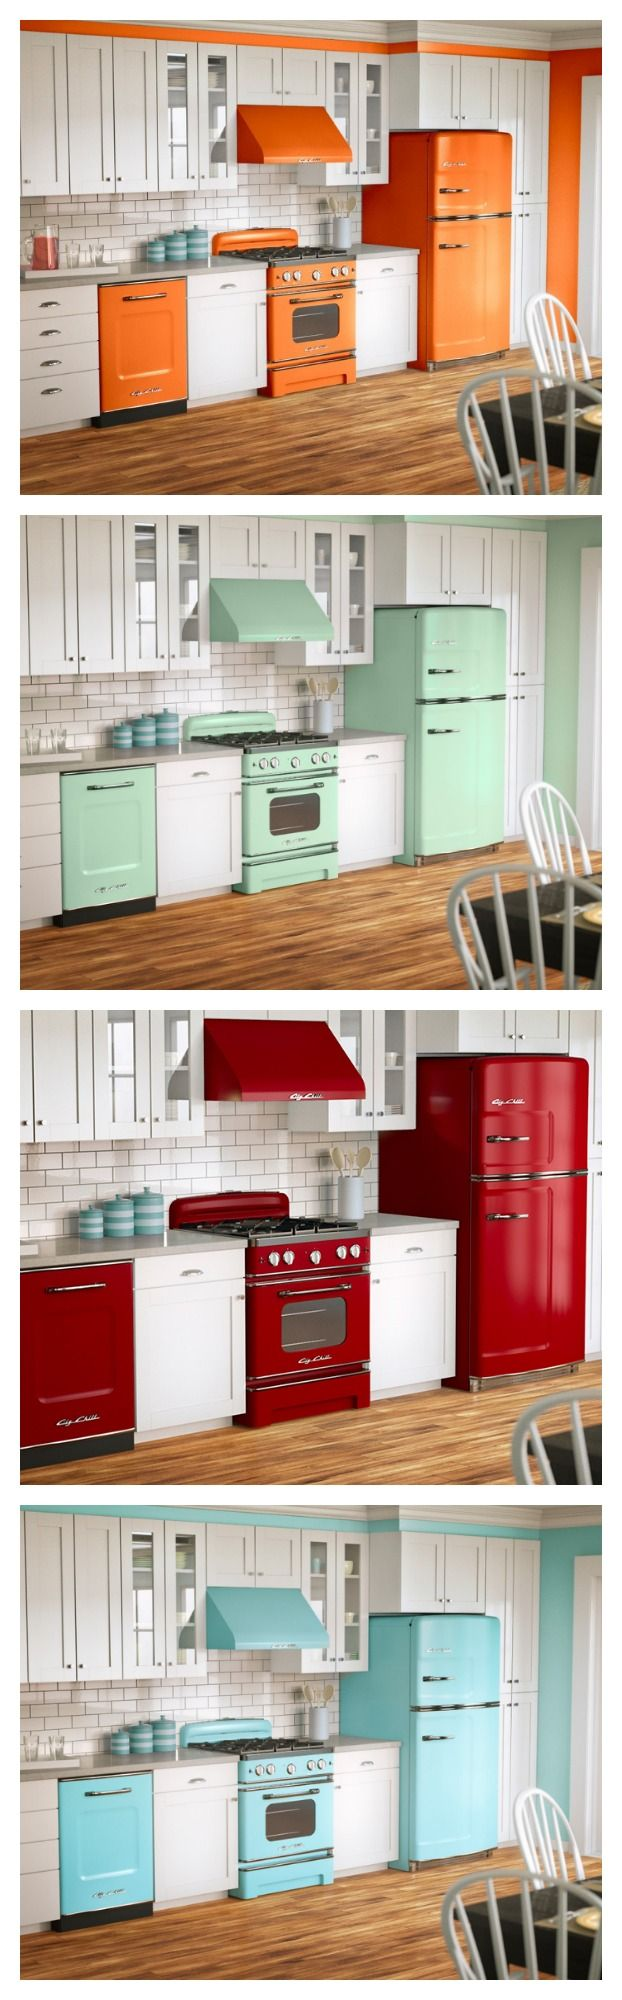 The Retro Kitchen Appliance Product Line | Big chill, Retro and Kitchens